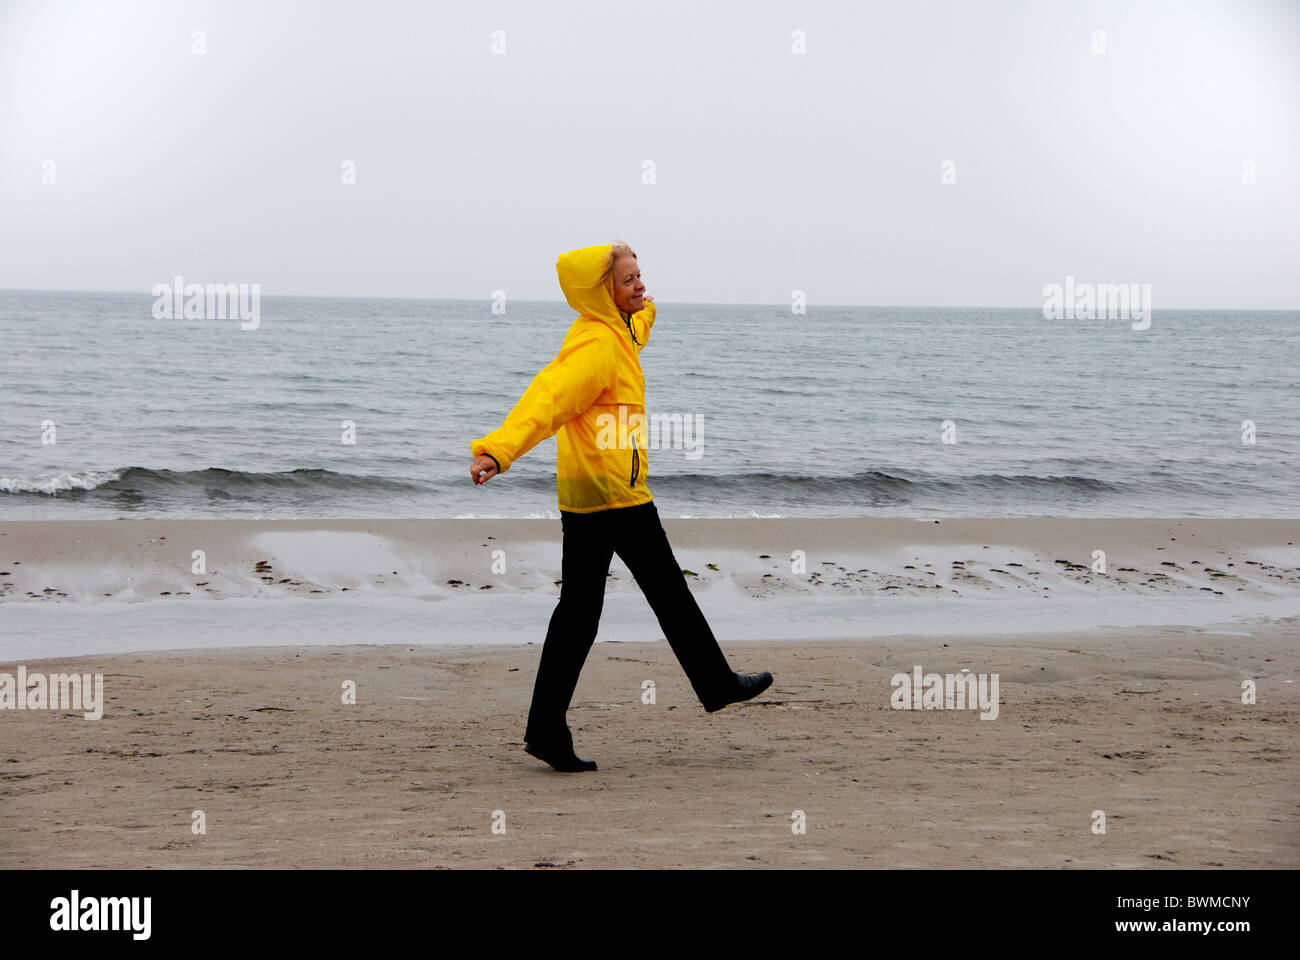 Germany Europe Baltic Sea rain storm Windy Breezy Uncomfortable female seniors mature woman rain clothing - Stock Image